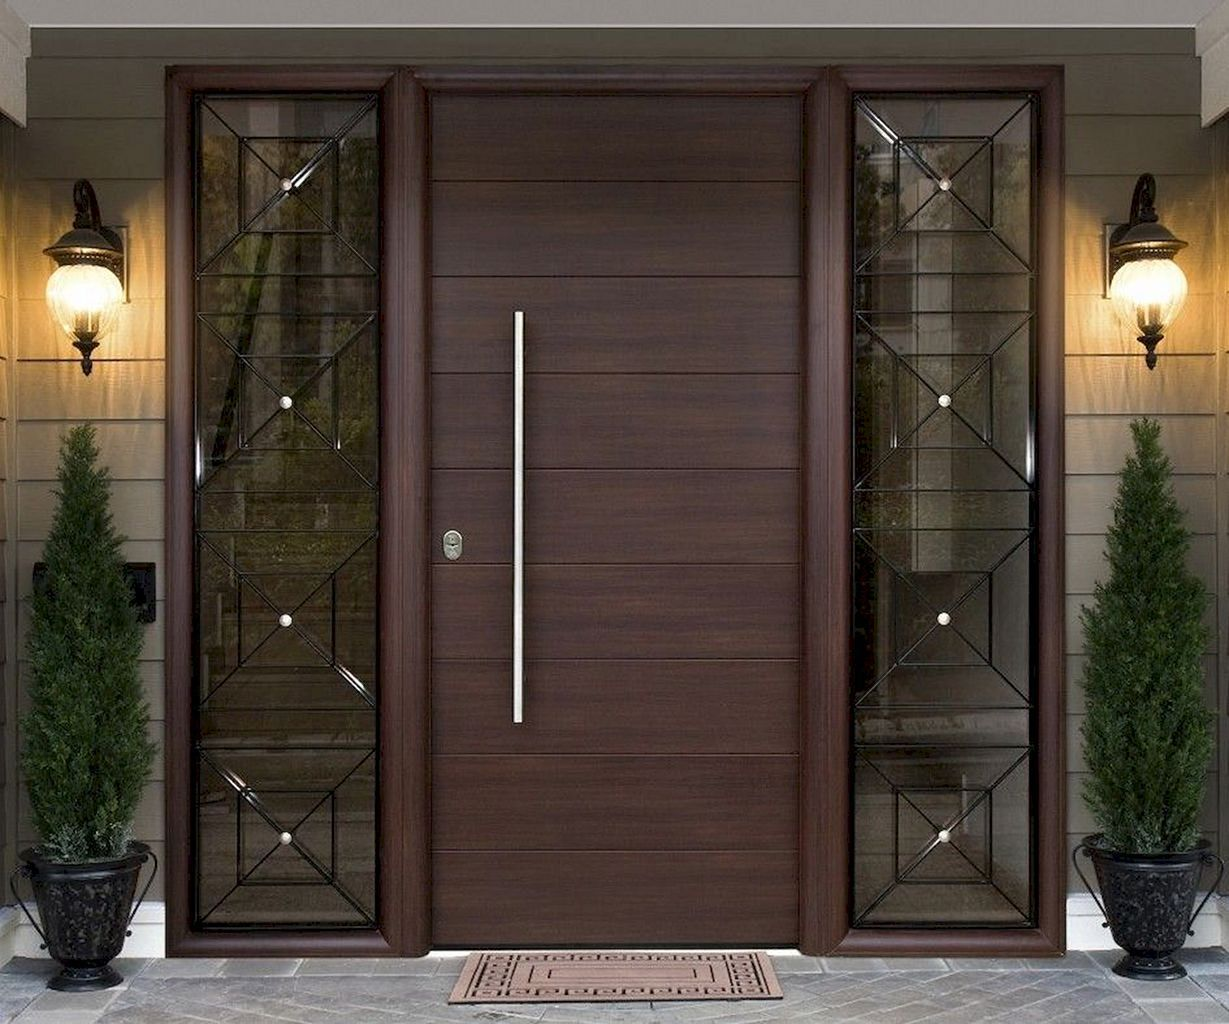 12 Stylish Home Door Design That Will Make Home Exterior Very Awesome Dexorate Entrance Door Design Modern Entrance Door Home Door Design